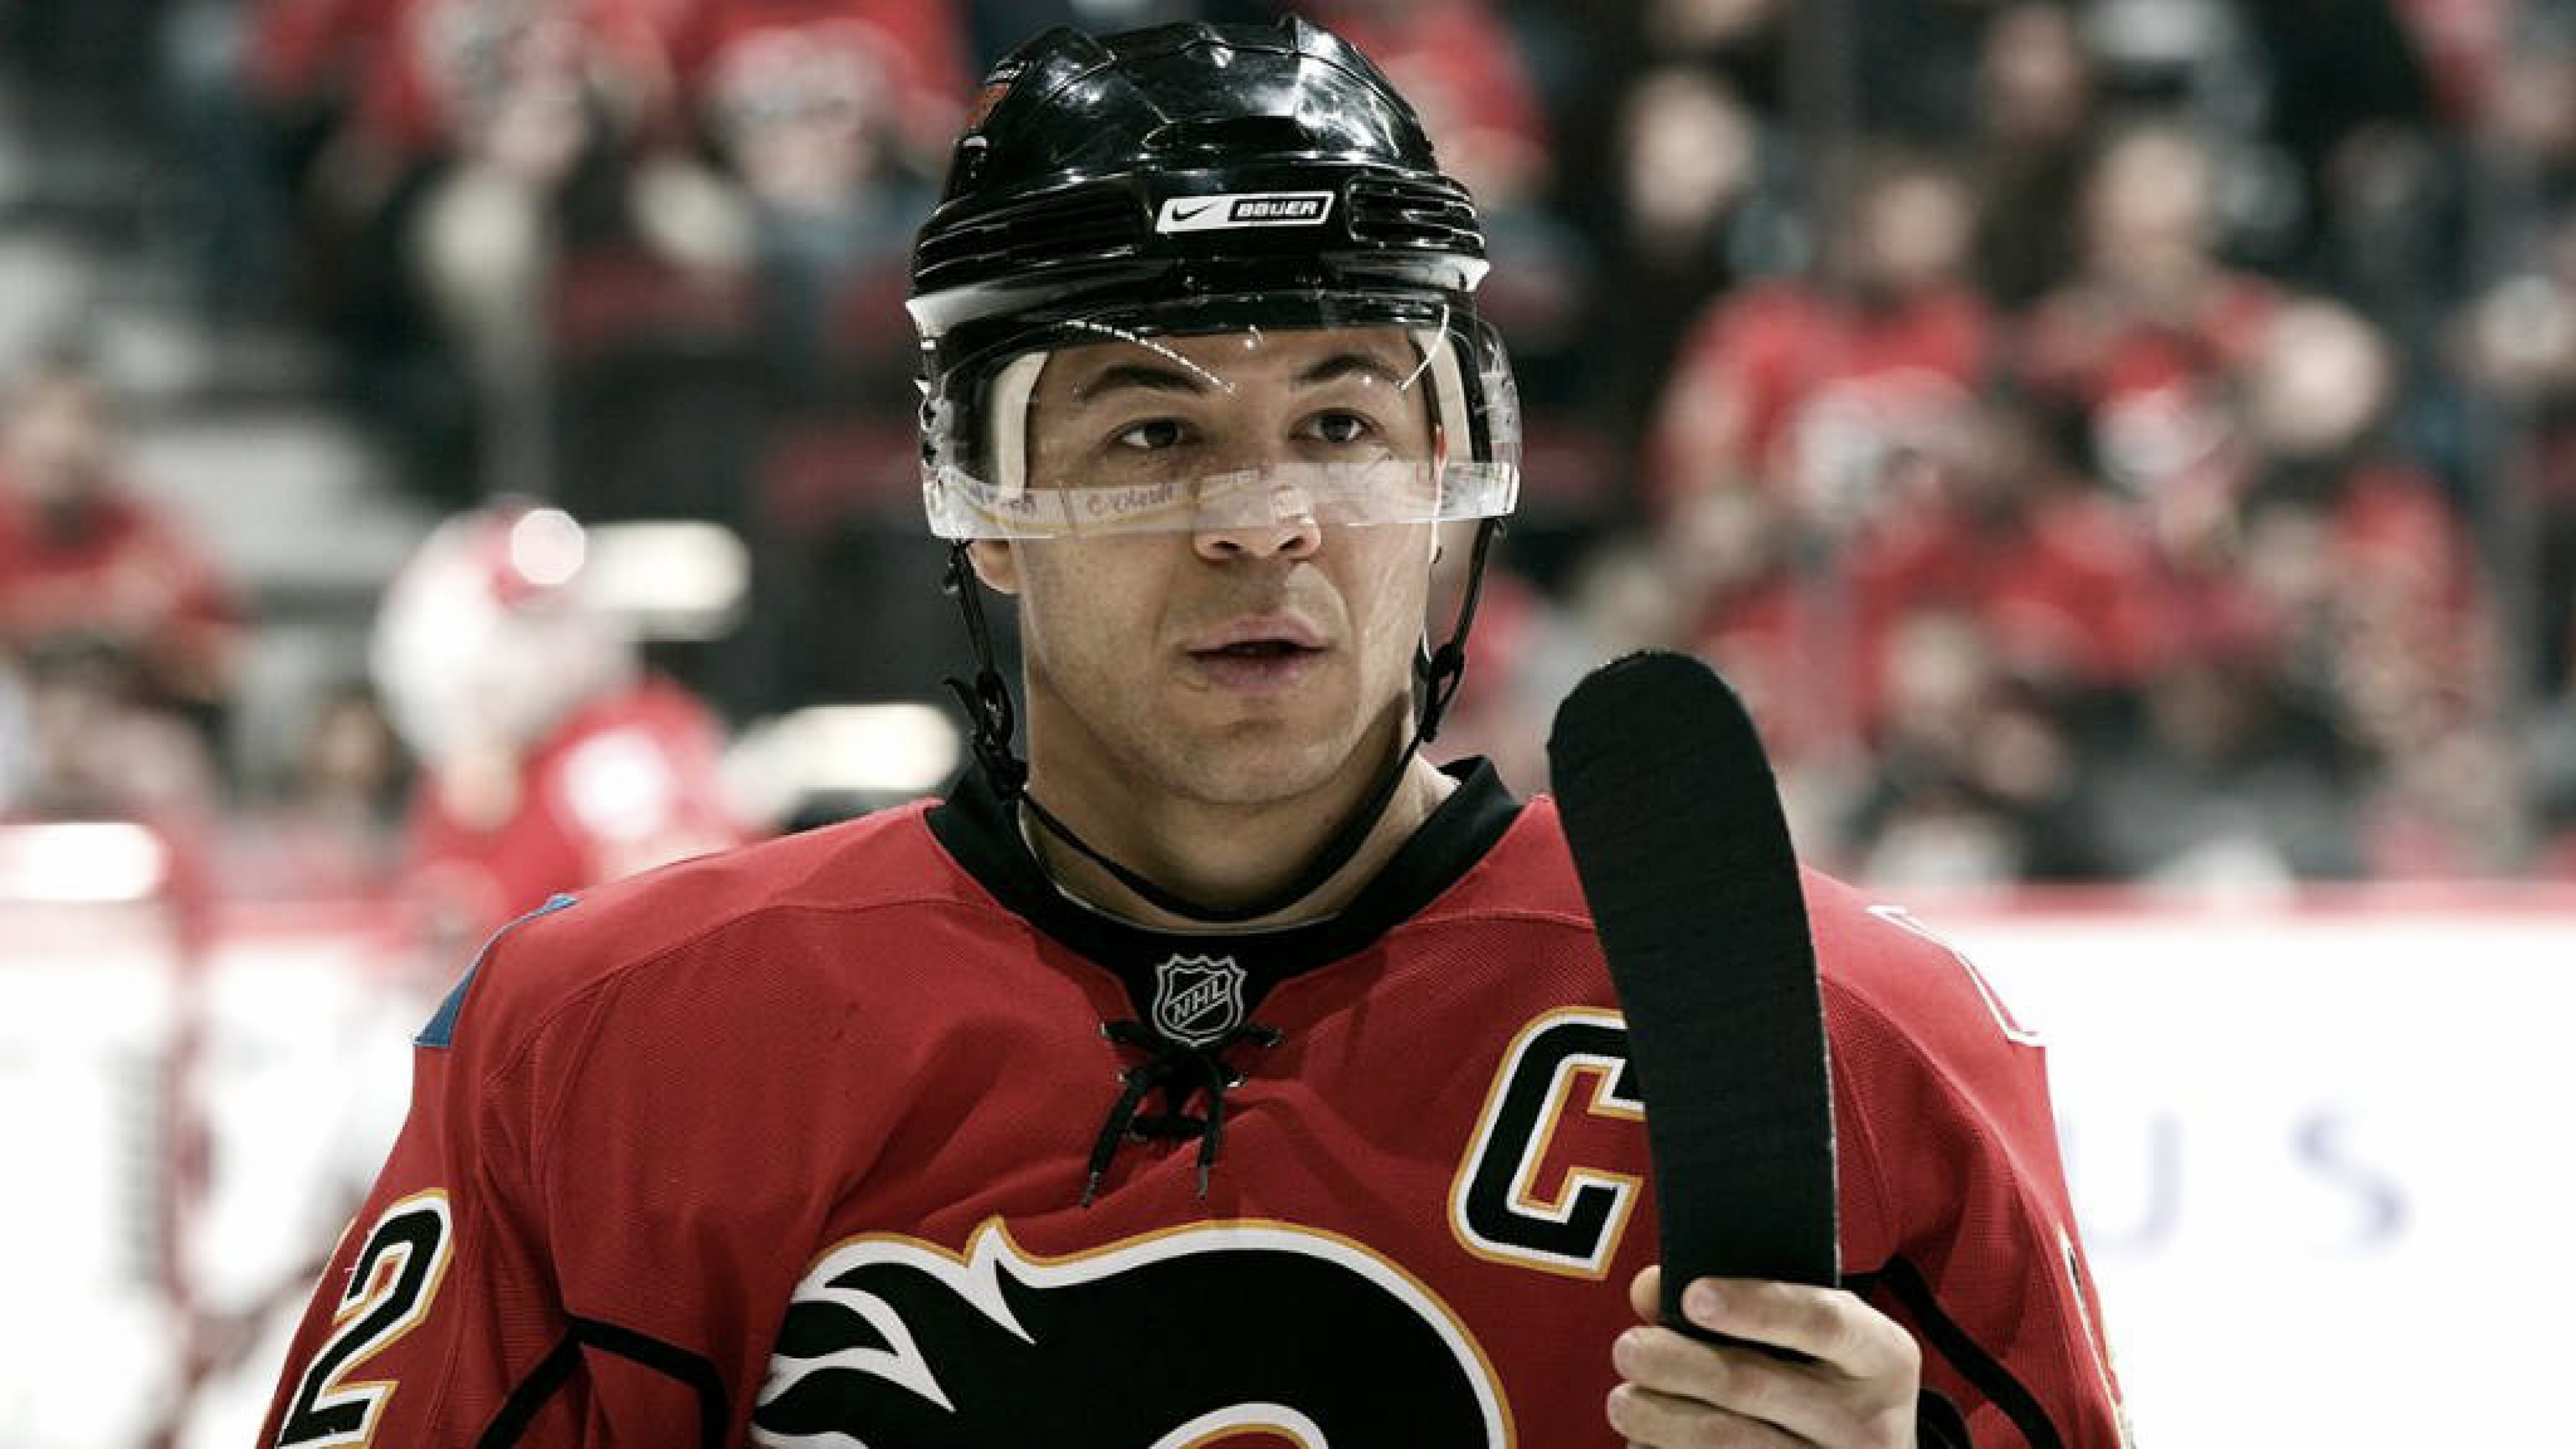 Jarome Iginla announces his retirement